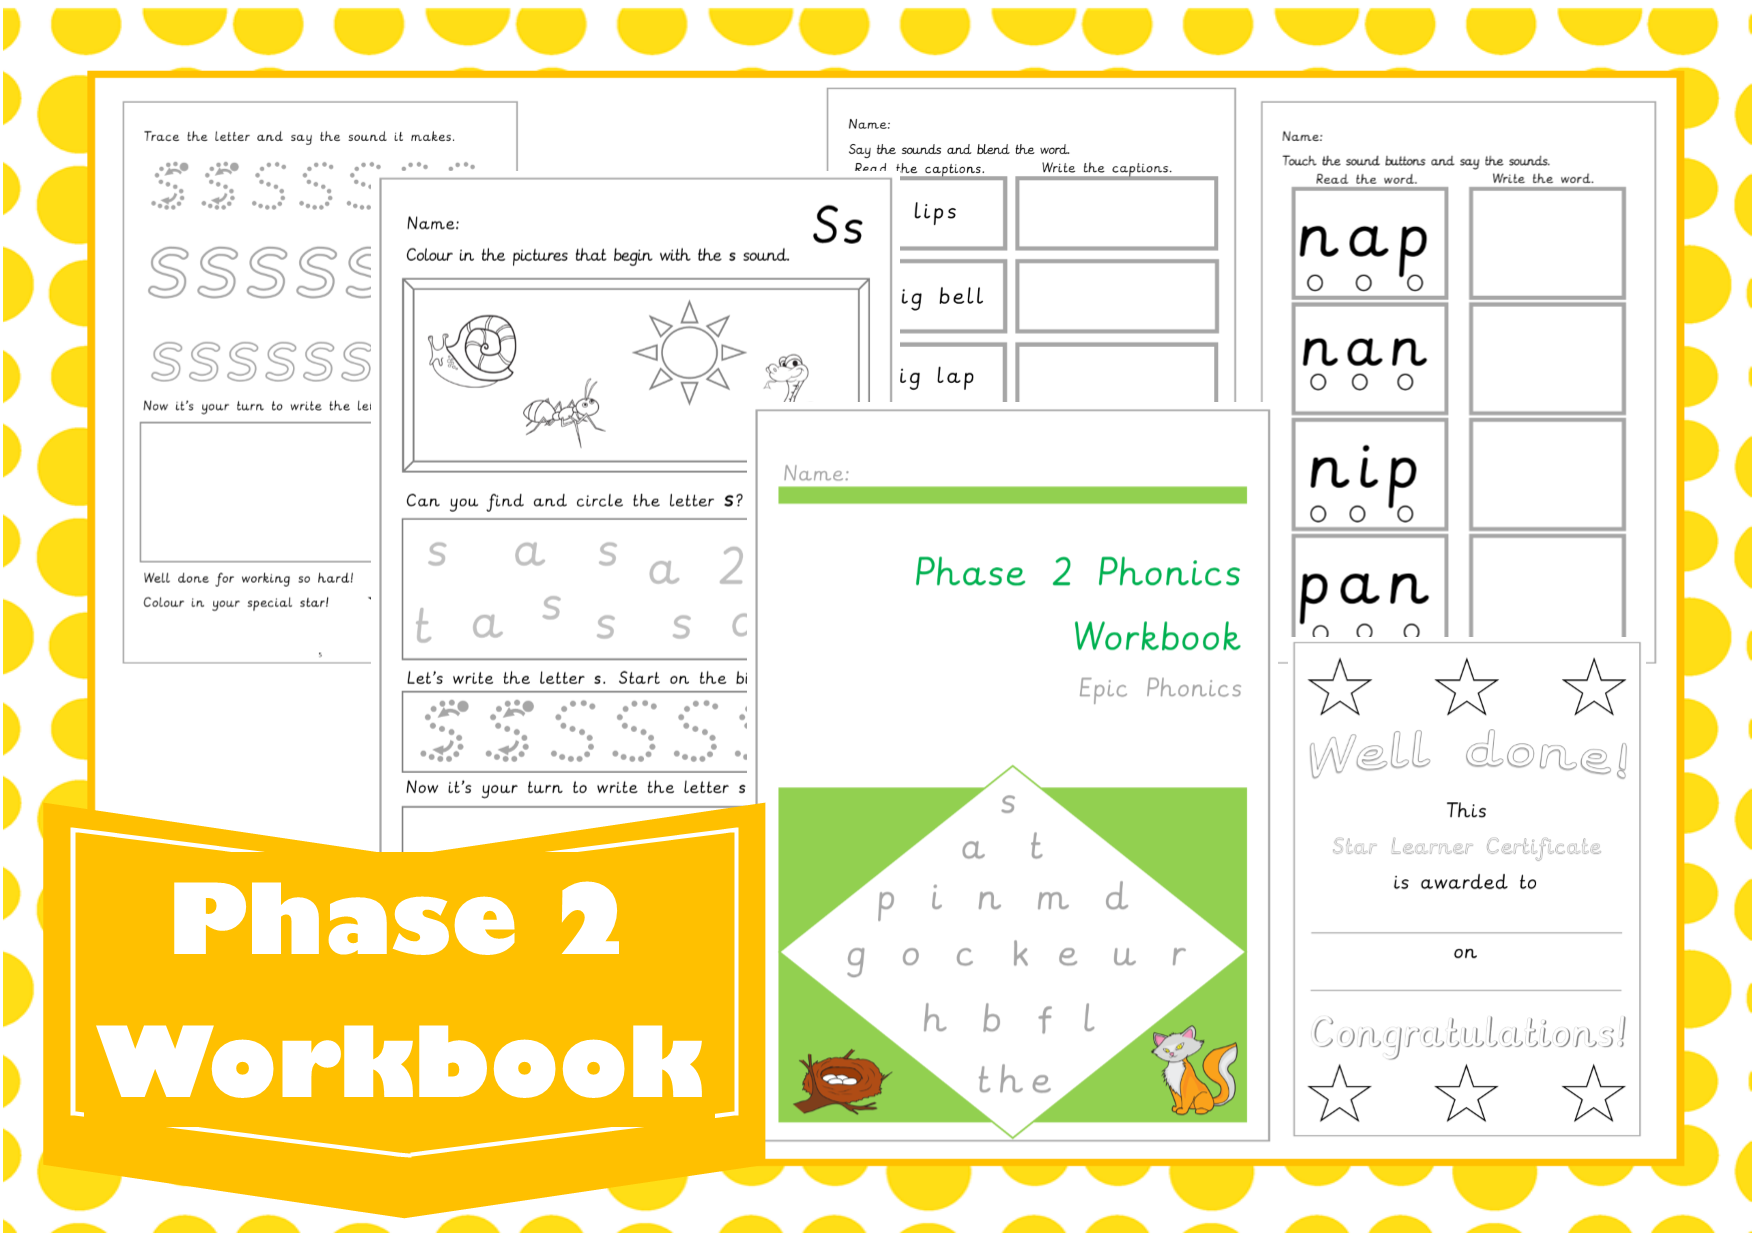 Worksheets Phoneme Worksheets teaching resources games epicphonics com phase 2 letters and sounds workbook